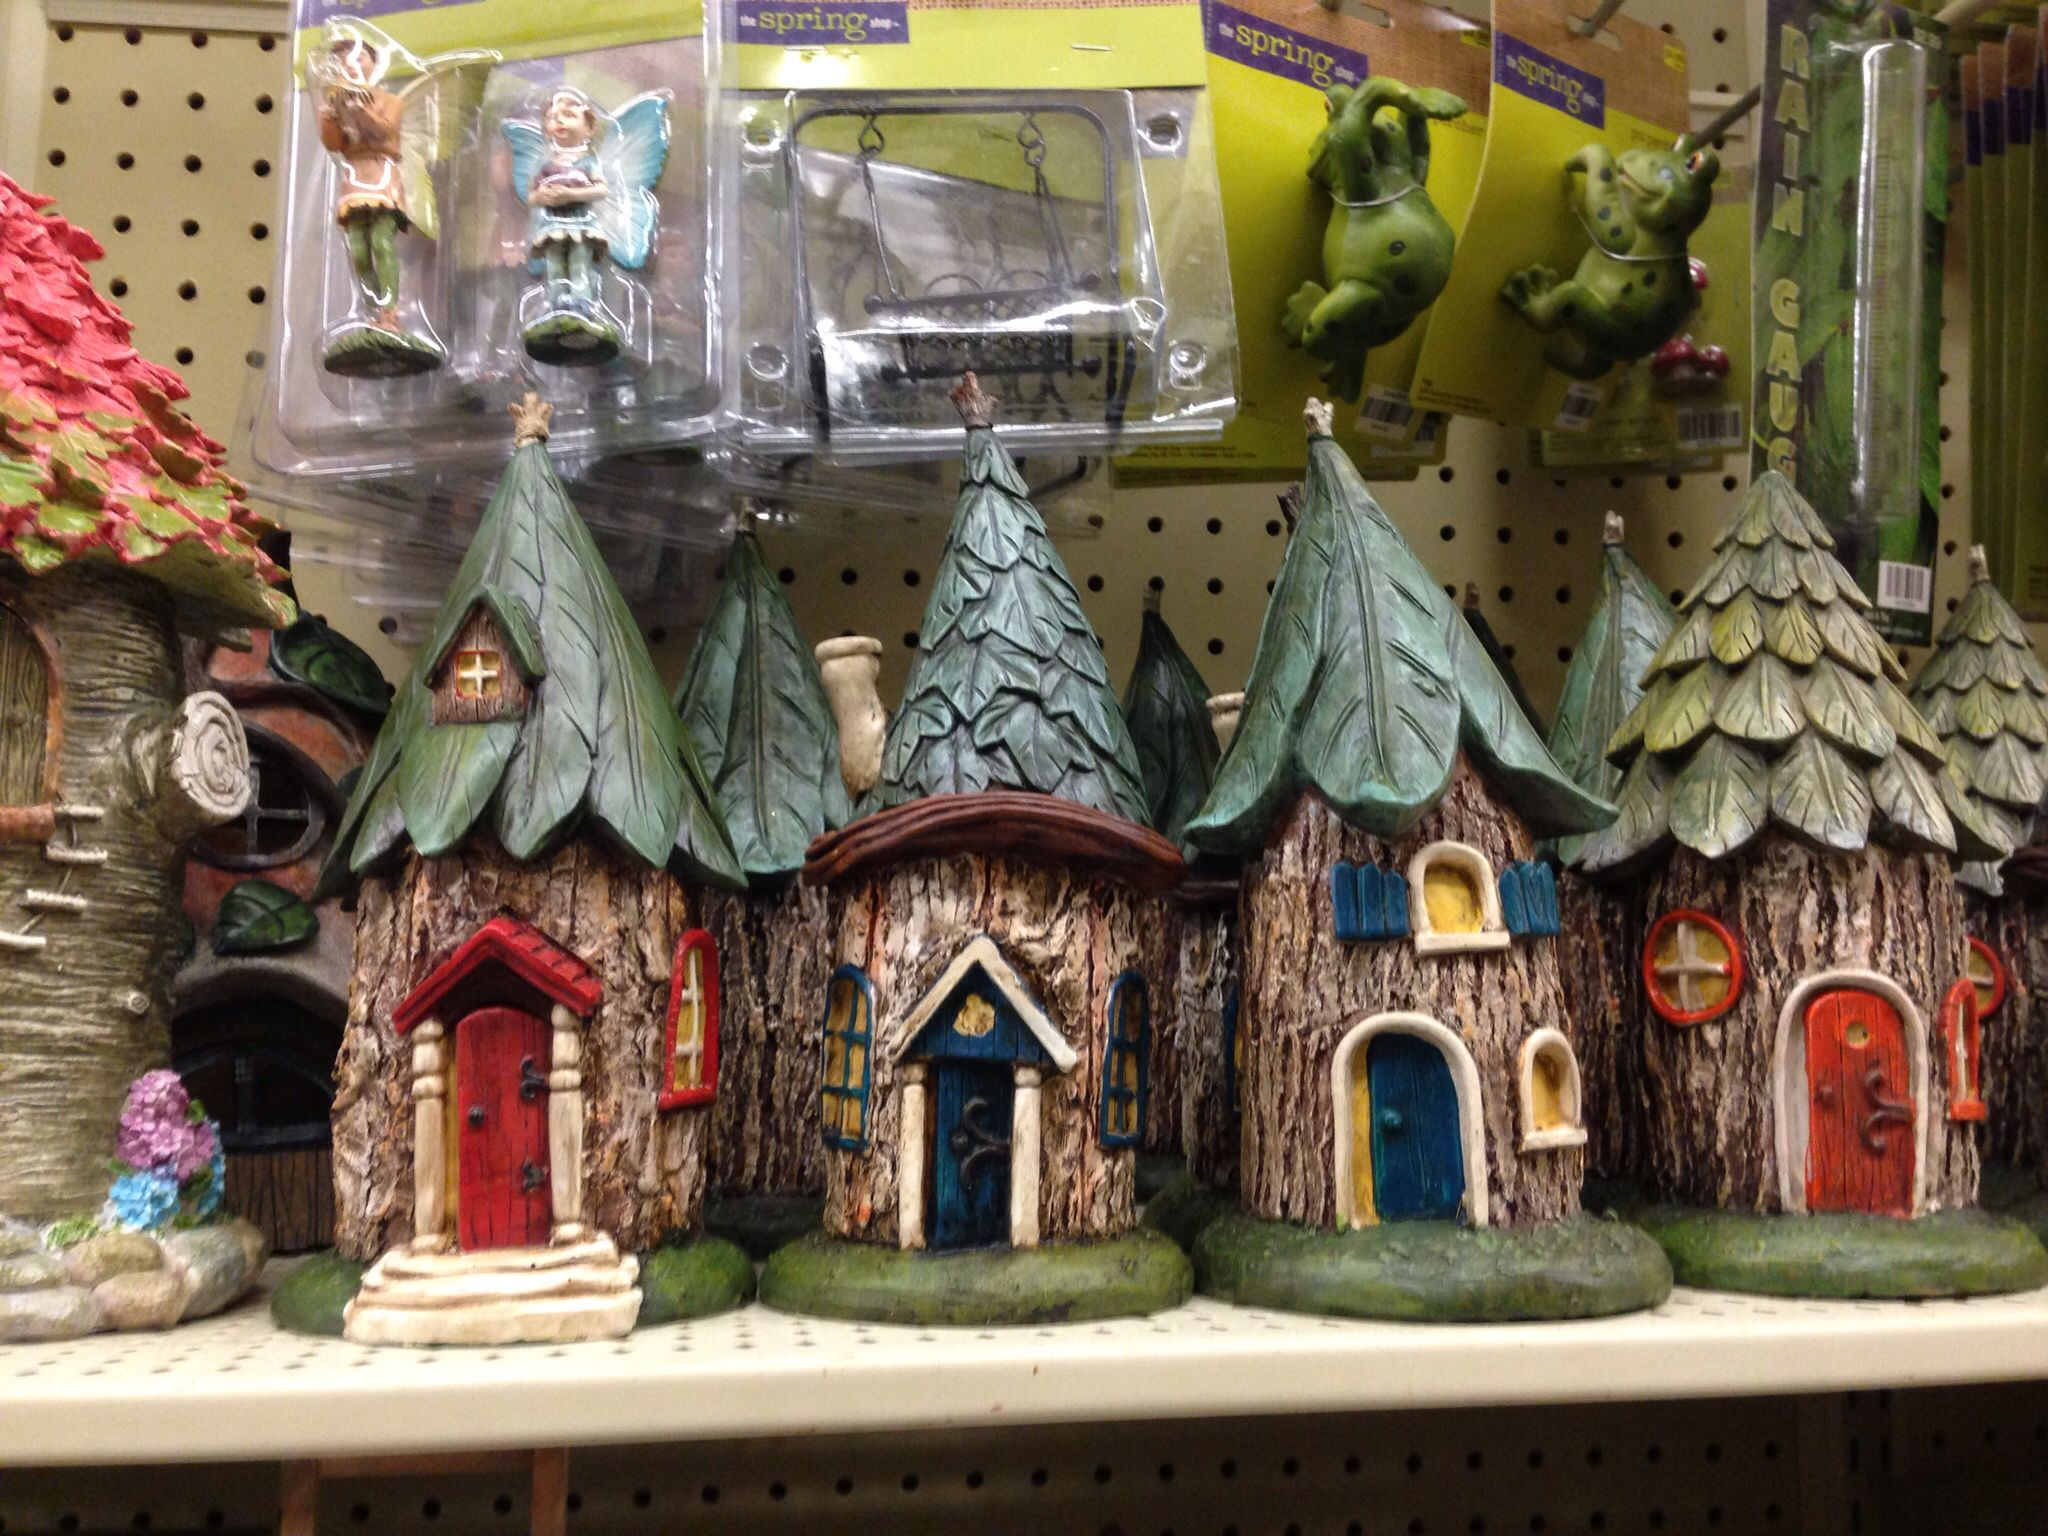 Hobby Lobby Fairy Garden Homes. Hate To Buy From Them When It Would Be More